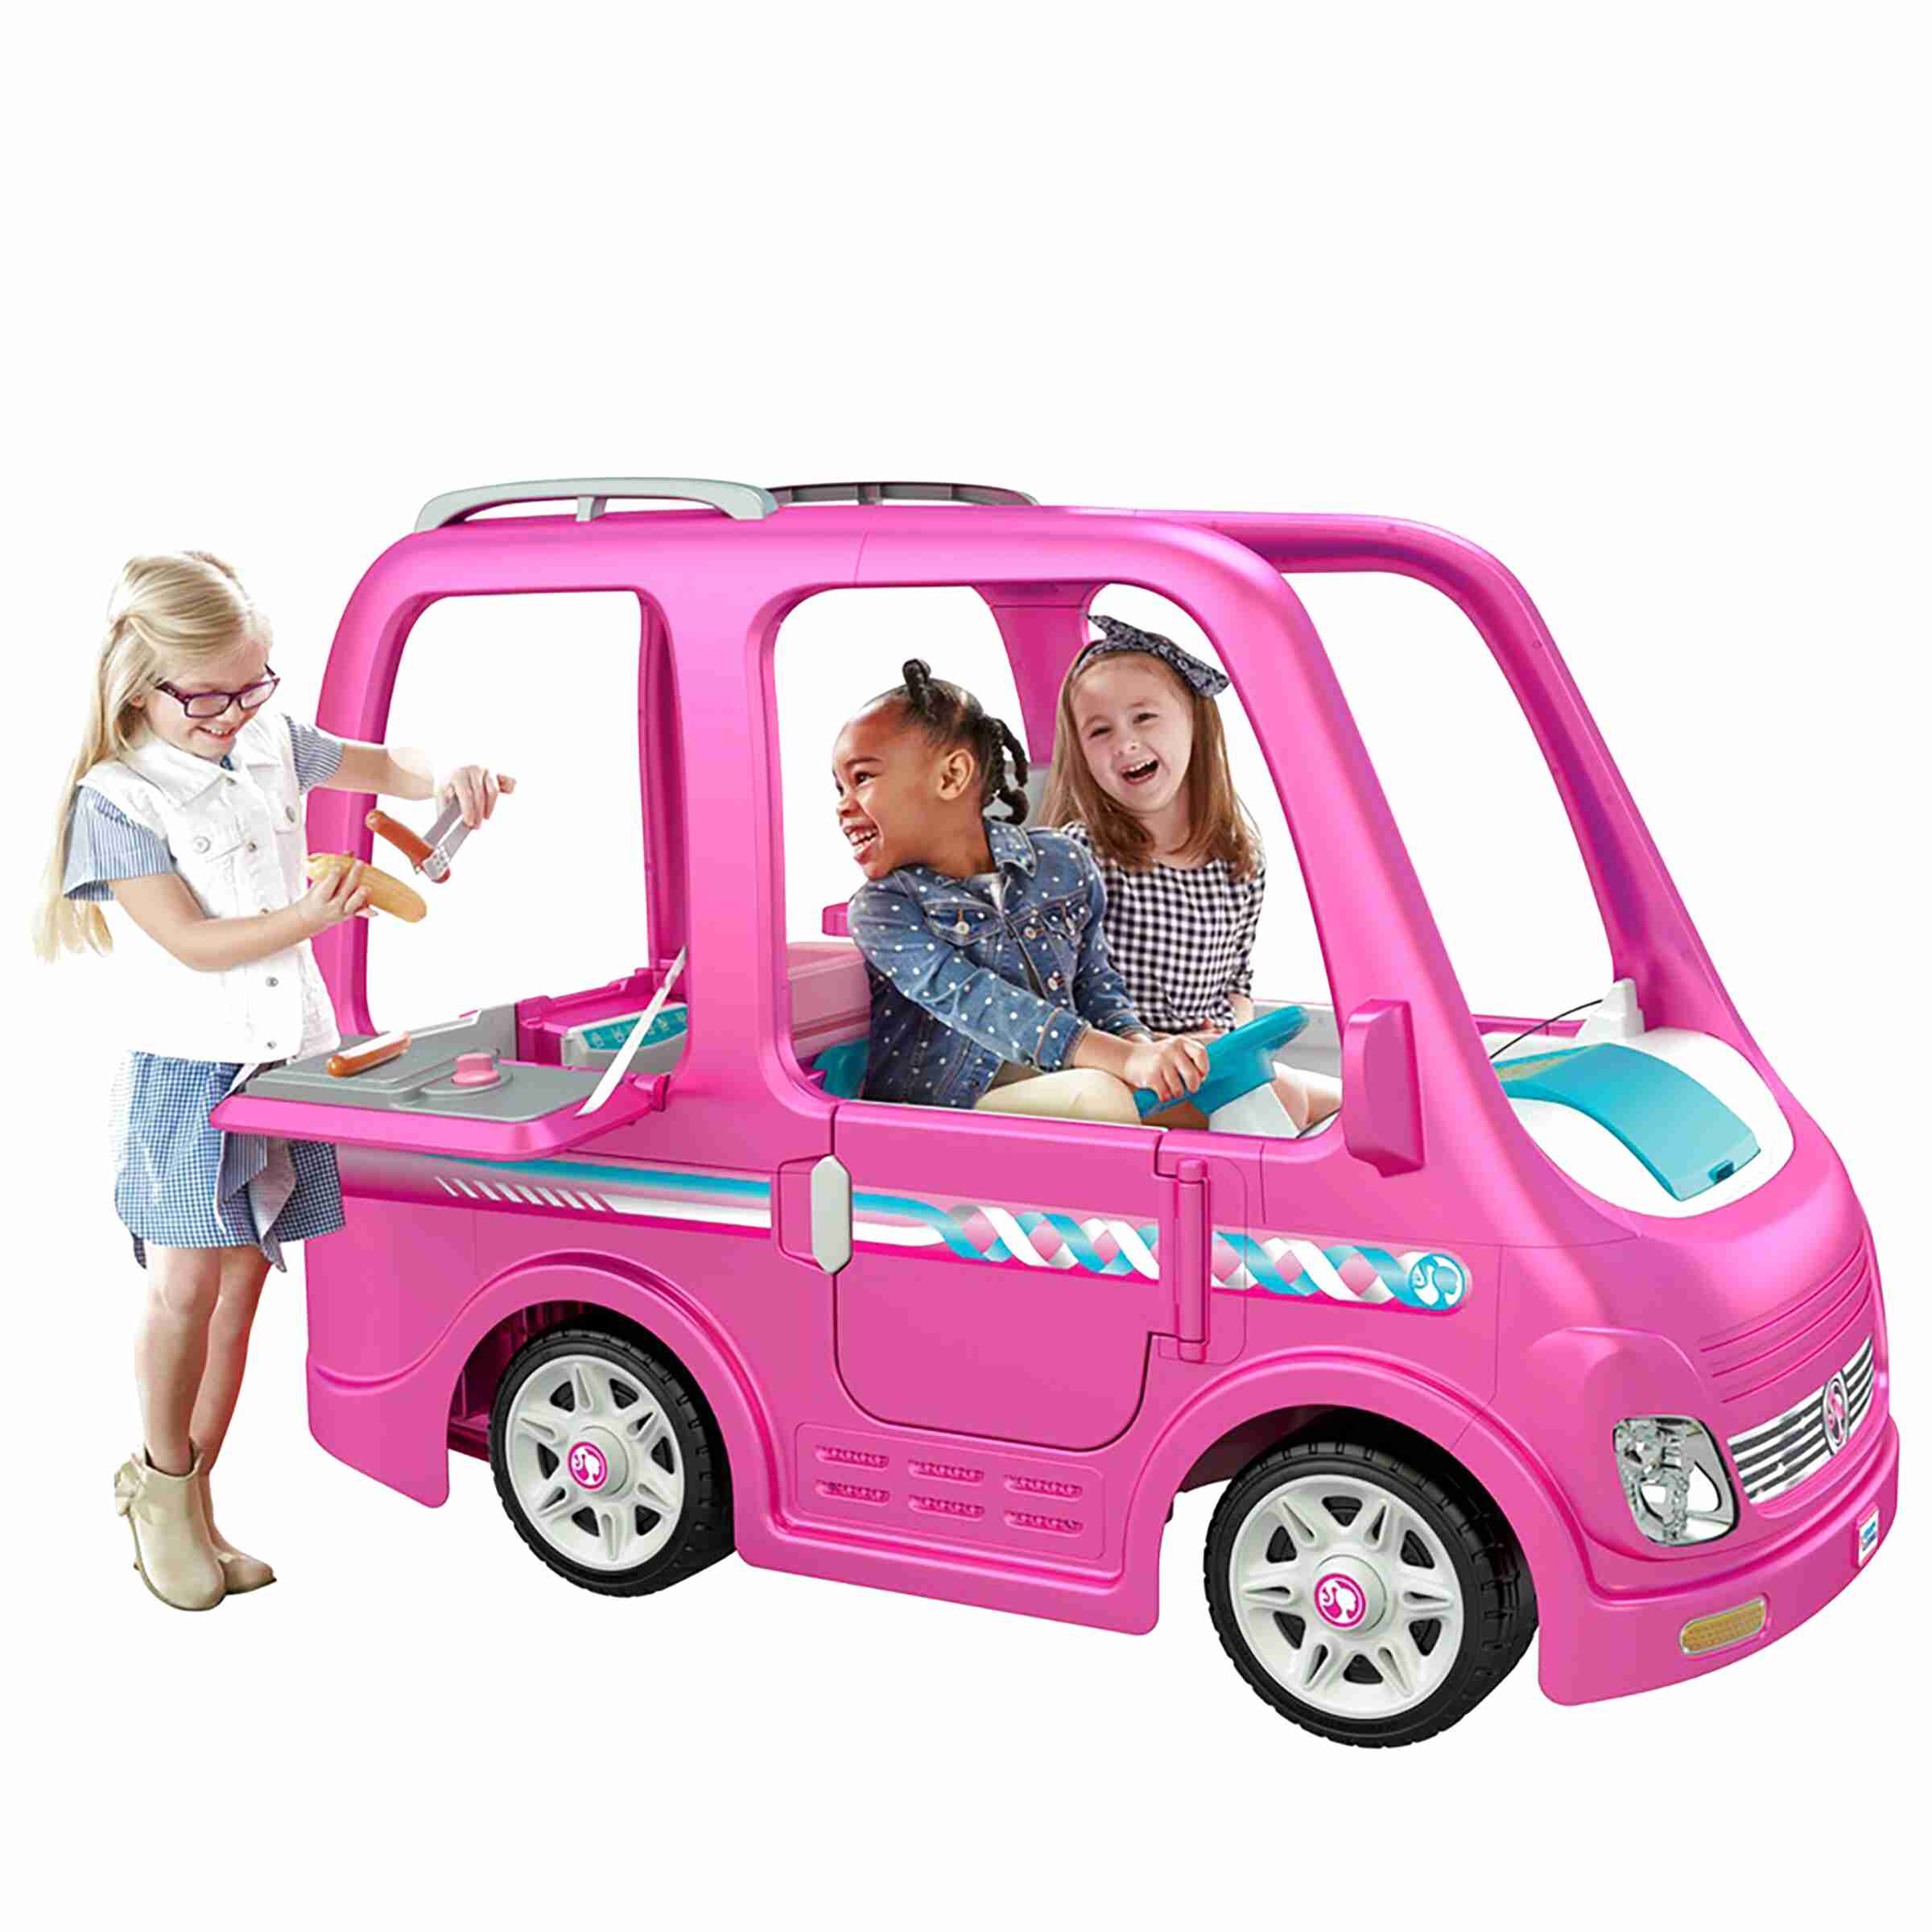 barbie power wheels for sale only 3 left at 60 barbie power wheels for sale only 3